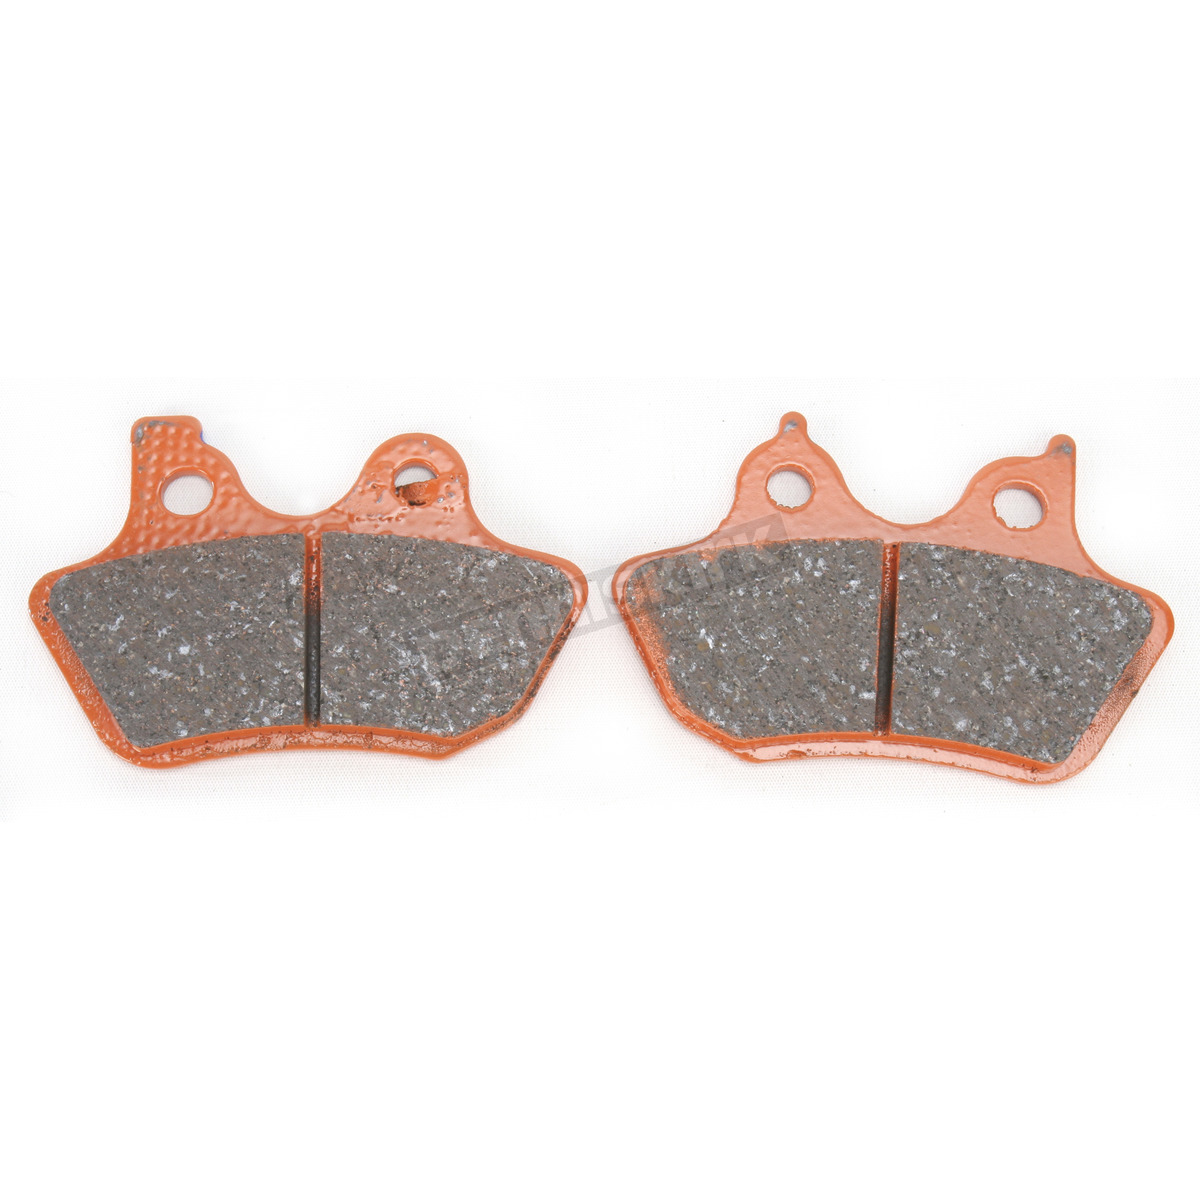 FRONT REAR Brake Pads for Harley Davidson FLTCUi Ultra Classic 2001-2004